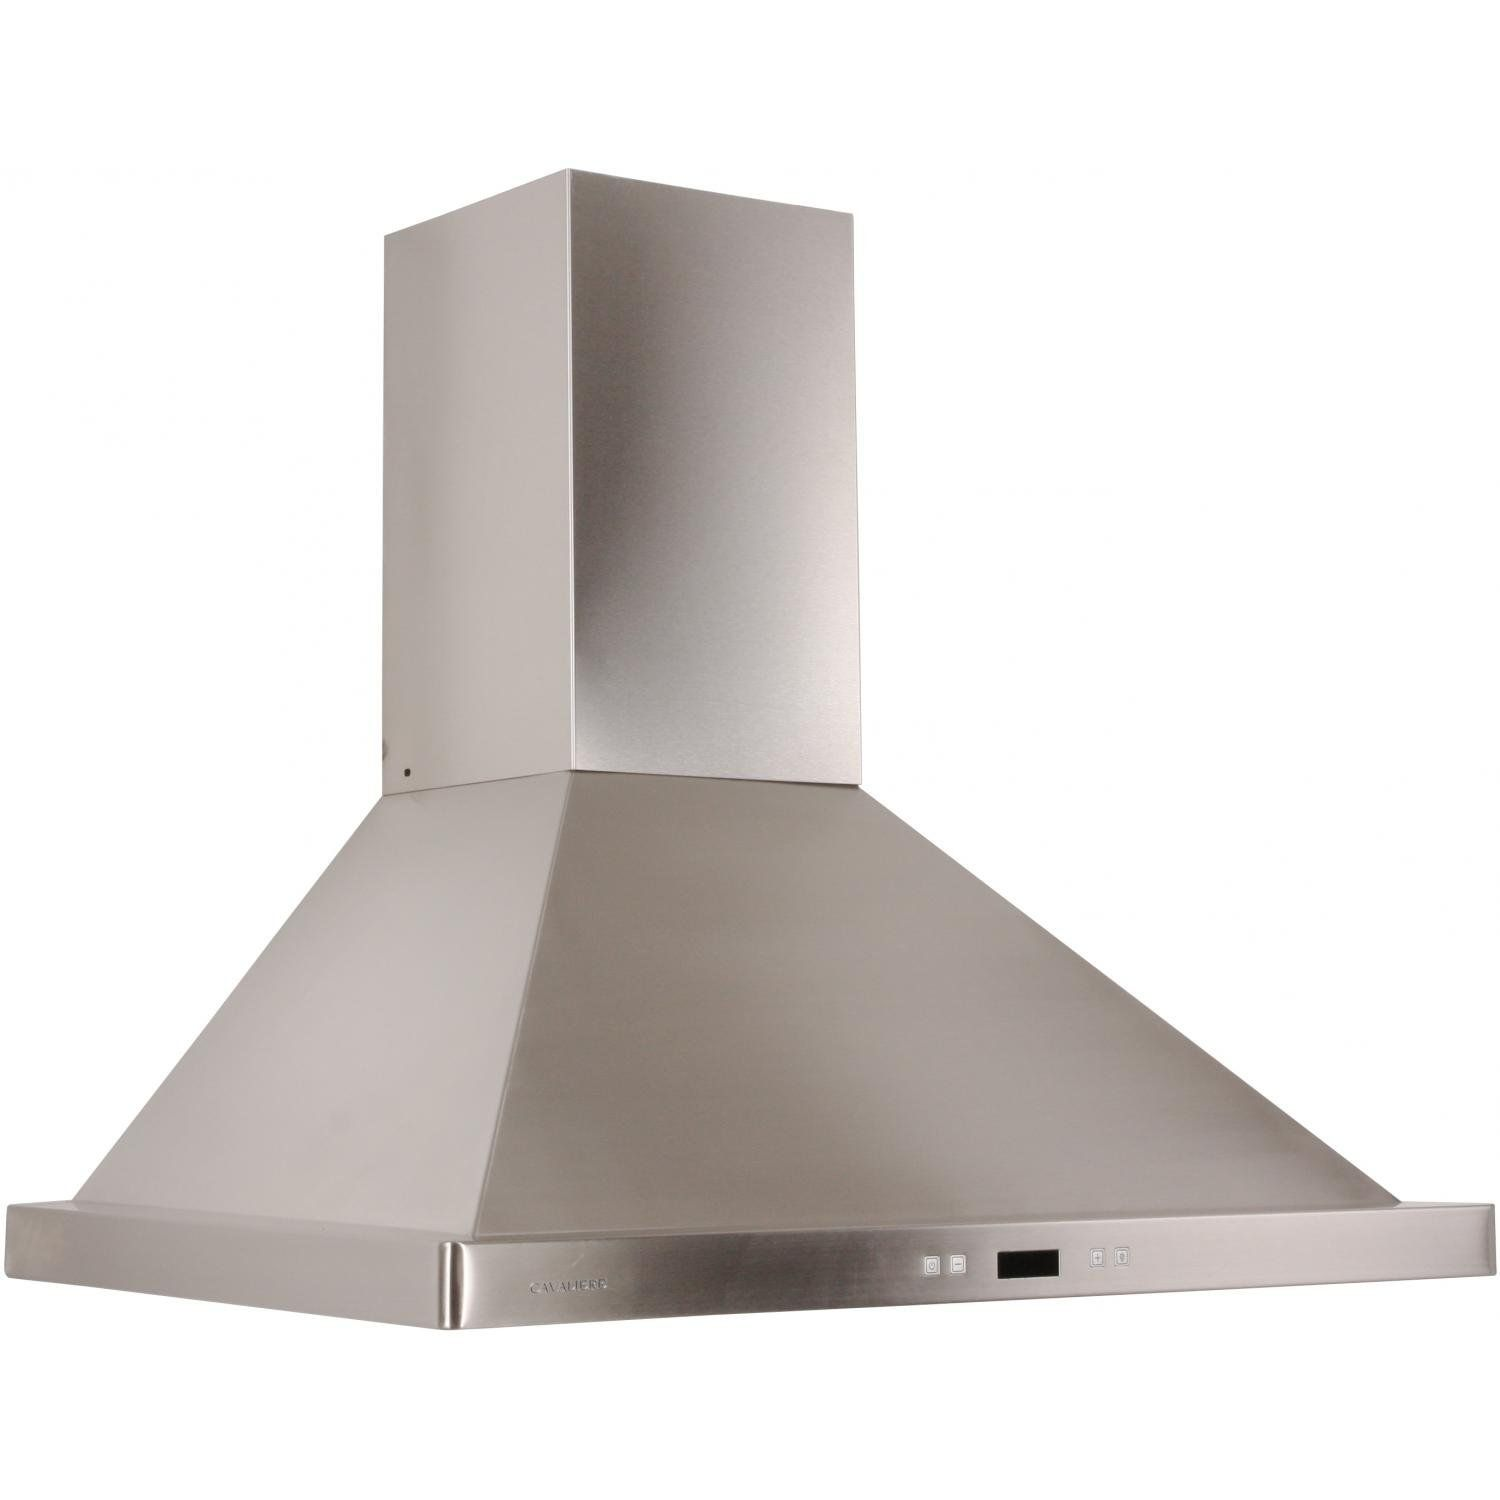 Amazon Com Cavaliere Euro Sv218b2 30 900 Cfm 30 Inch Wide Stainless Steel Wall Mounted Range Hood With H Wall Mount Range Hood Range Hood Stainless Range Hood